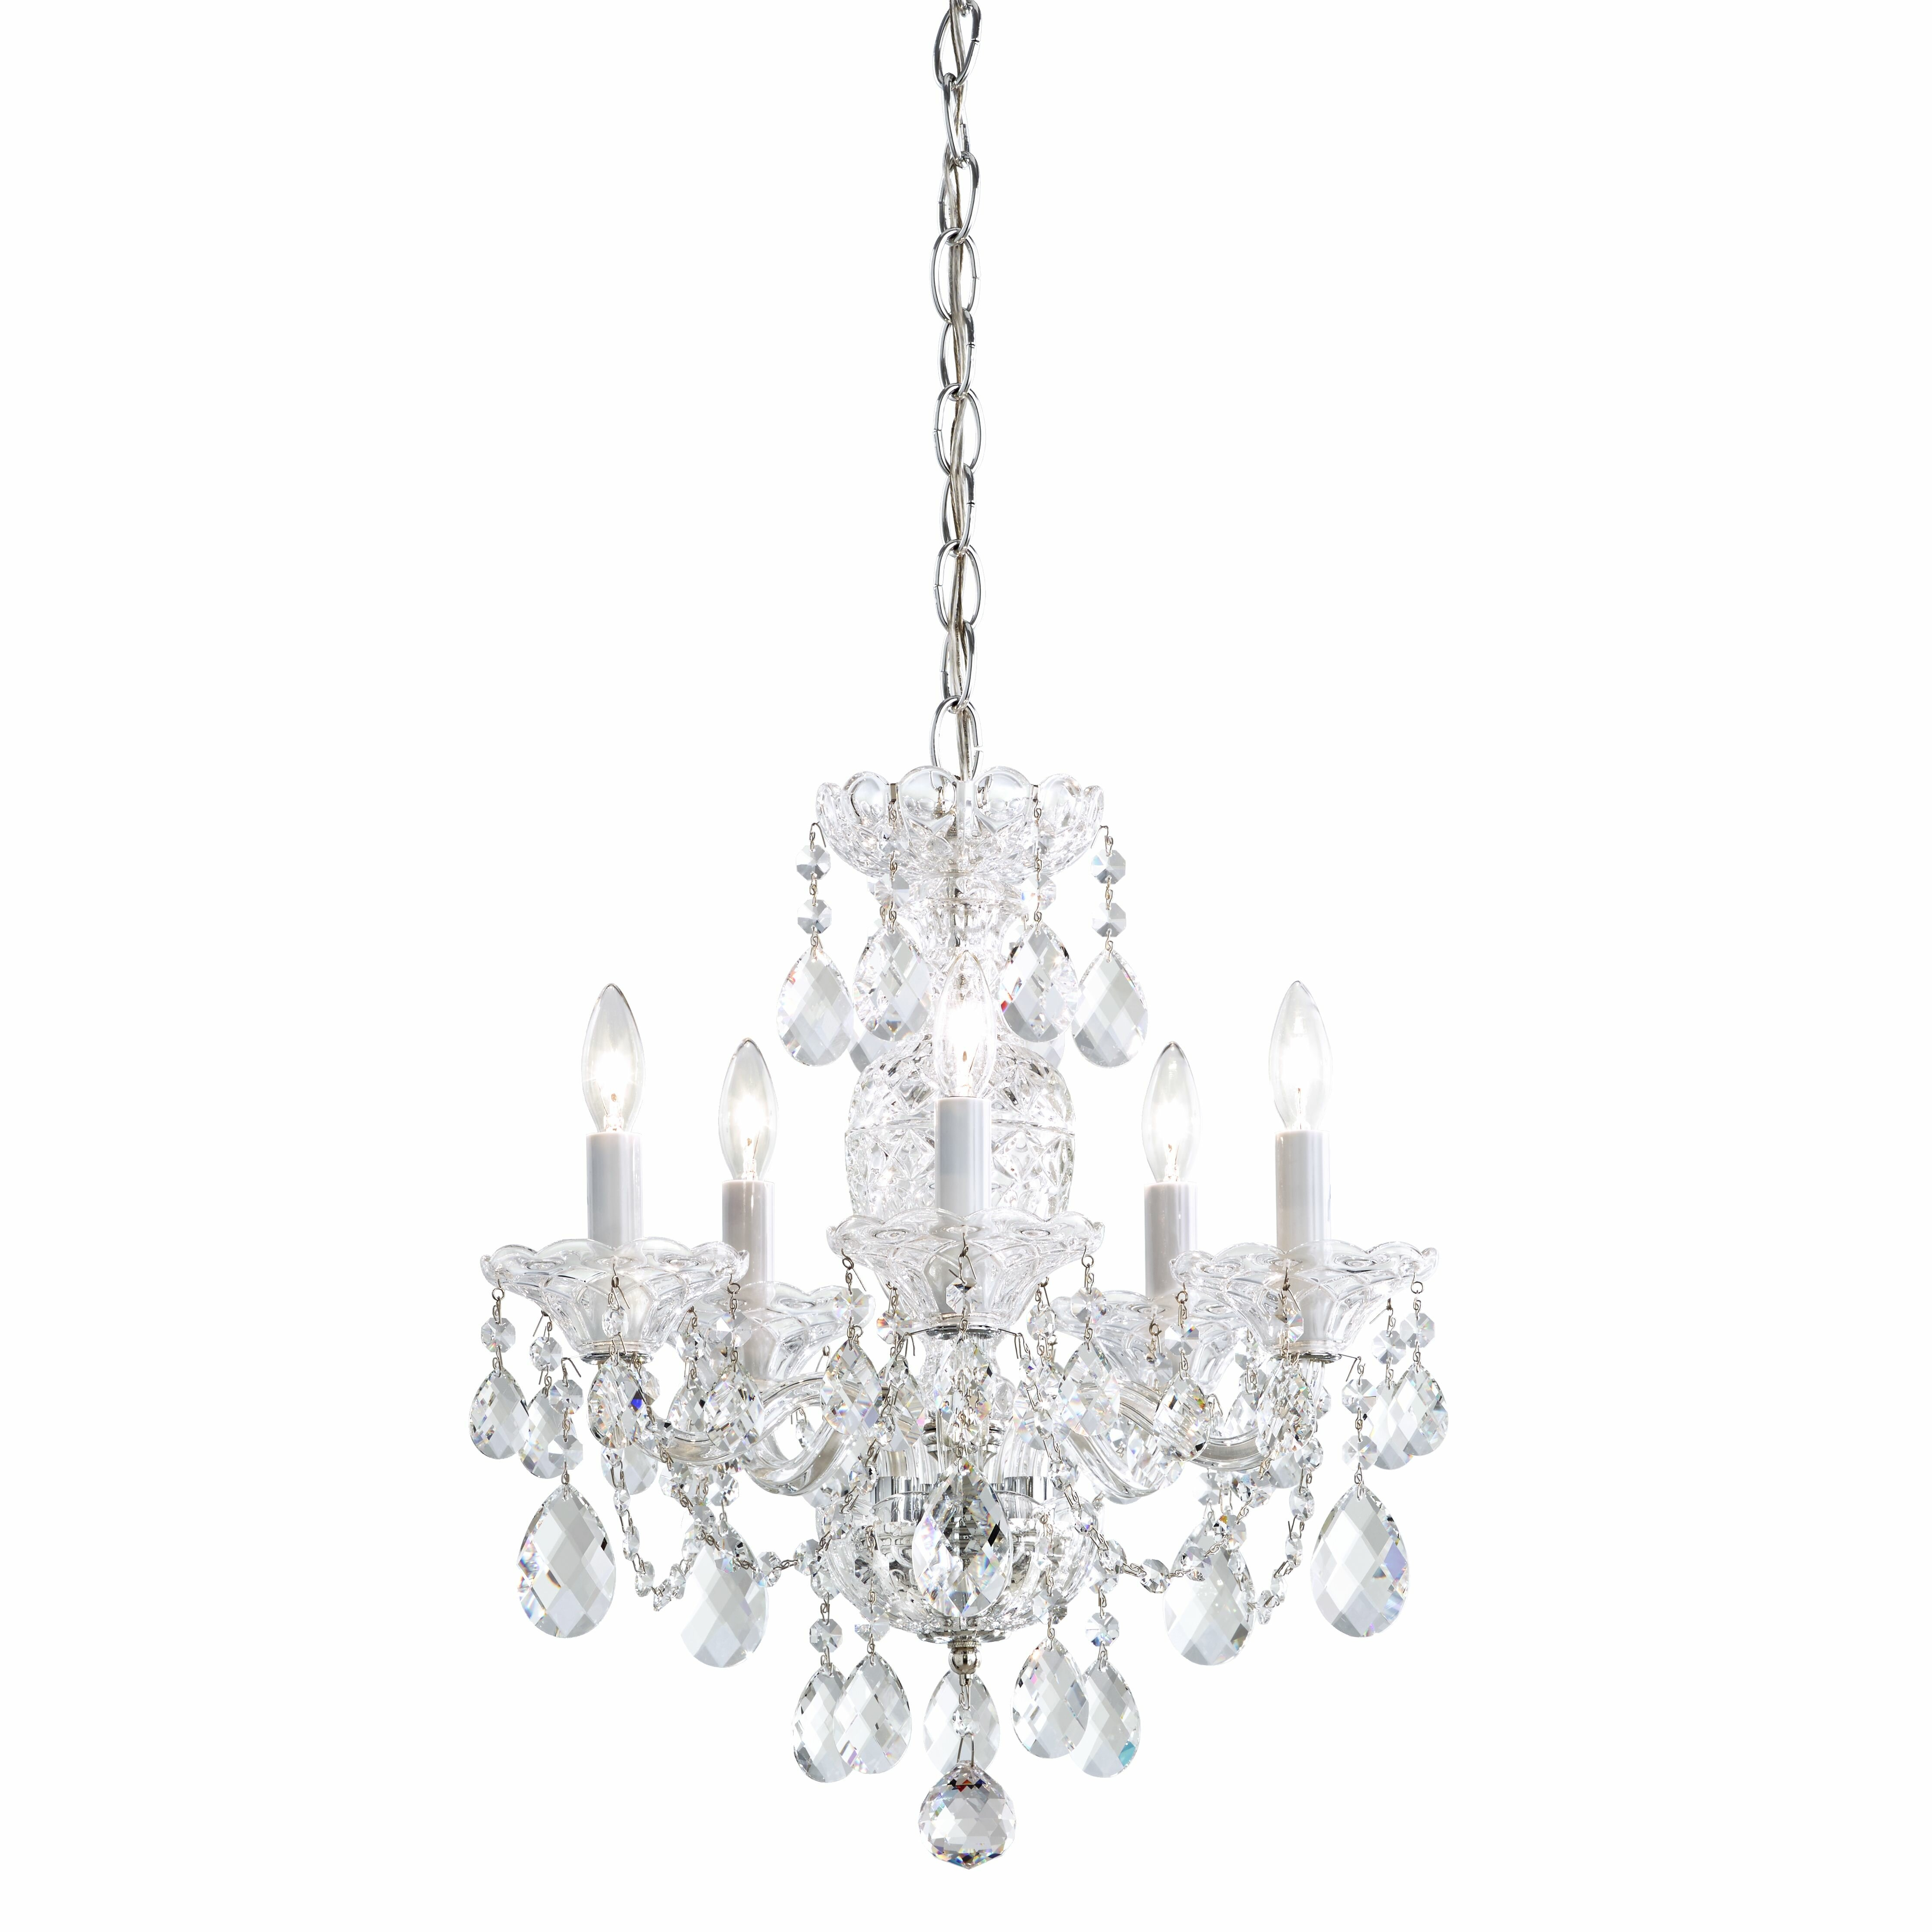 Schonbek wayfair sterling 5 light candle style chandelier by schonbek arubaitofo Image collections